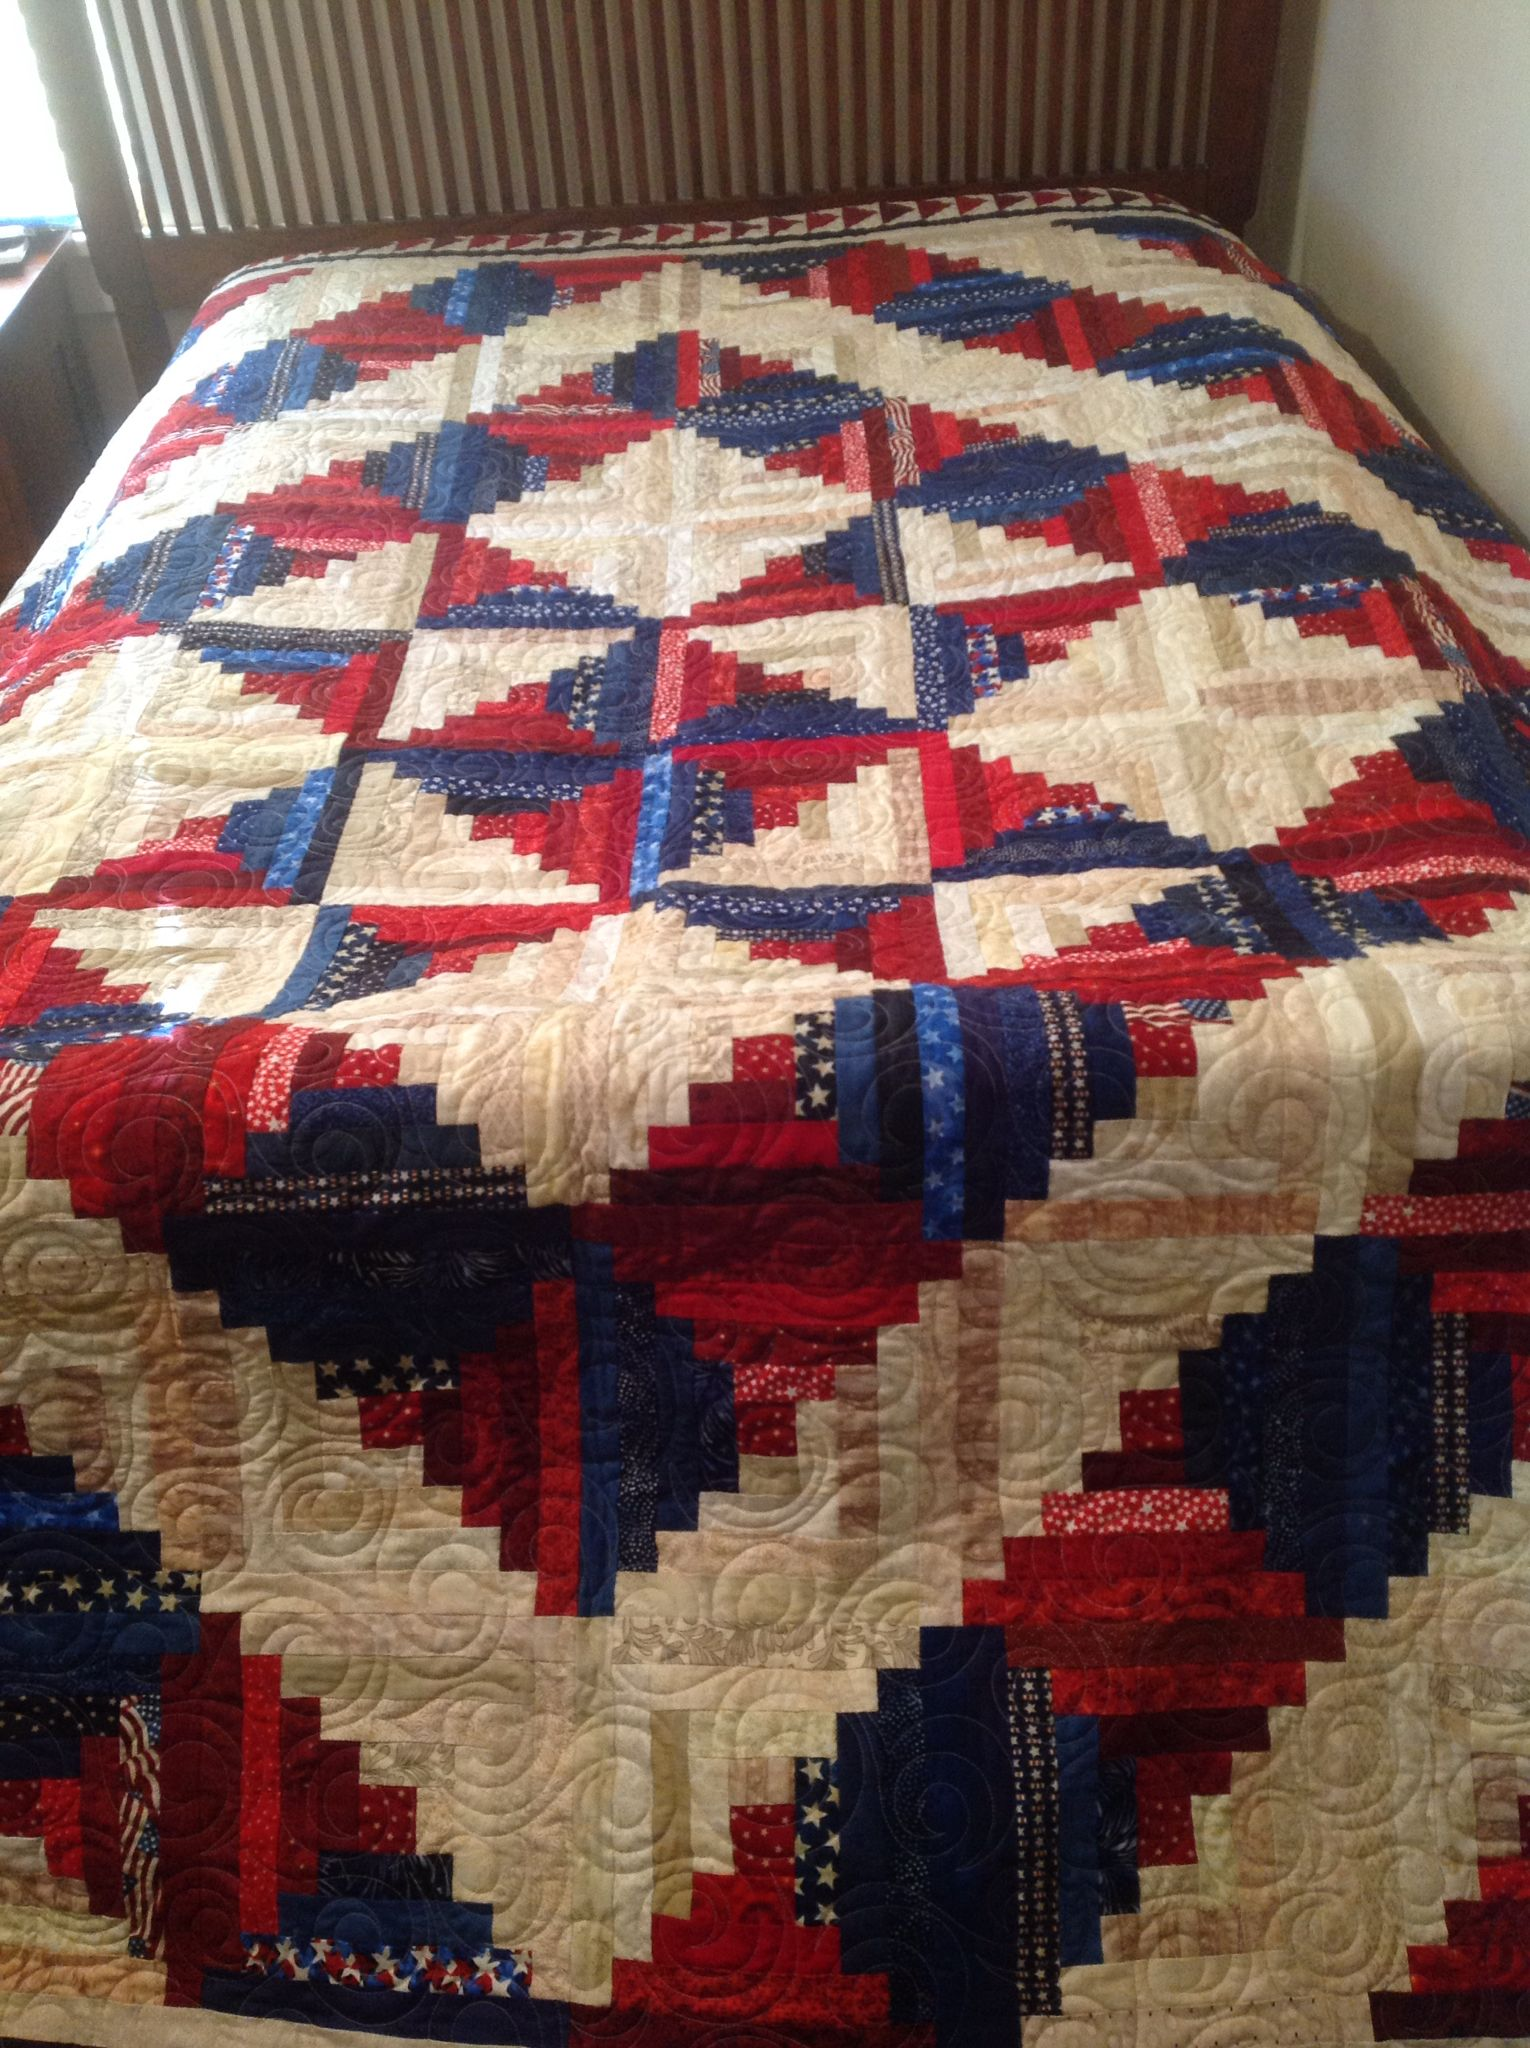 Patriotic Red White Blue Star Log Cabin Quilt Log Cabin Quilt Pattern Log Cabin Quilts Patriotic Quilts